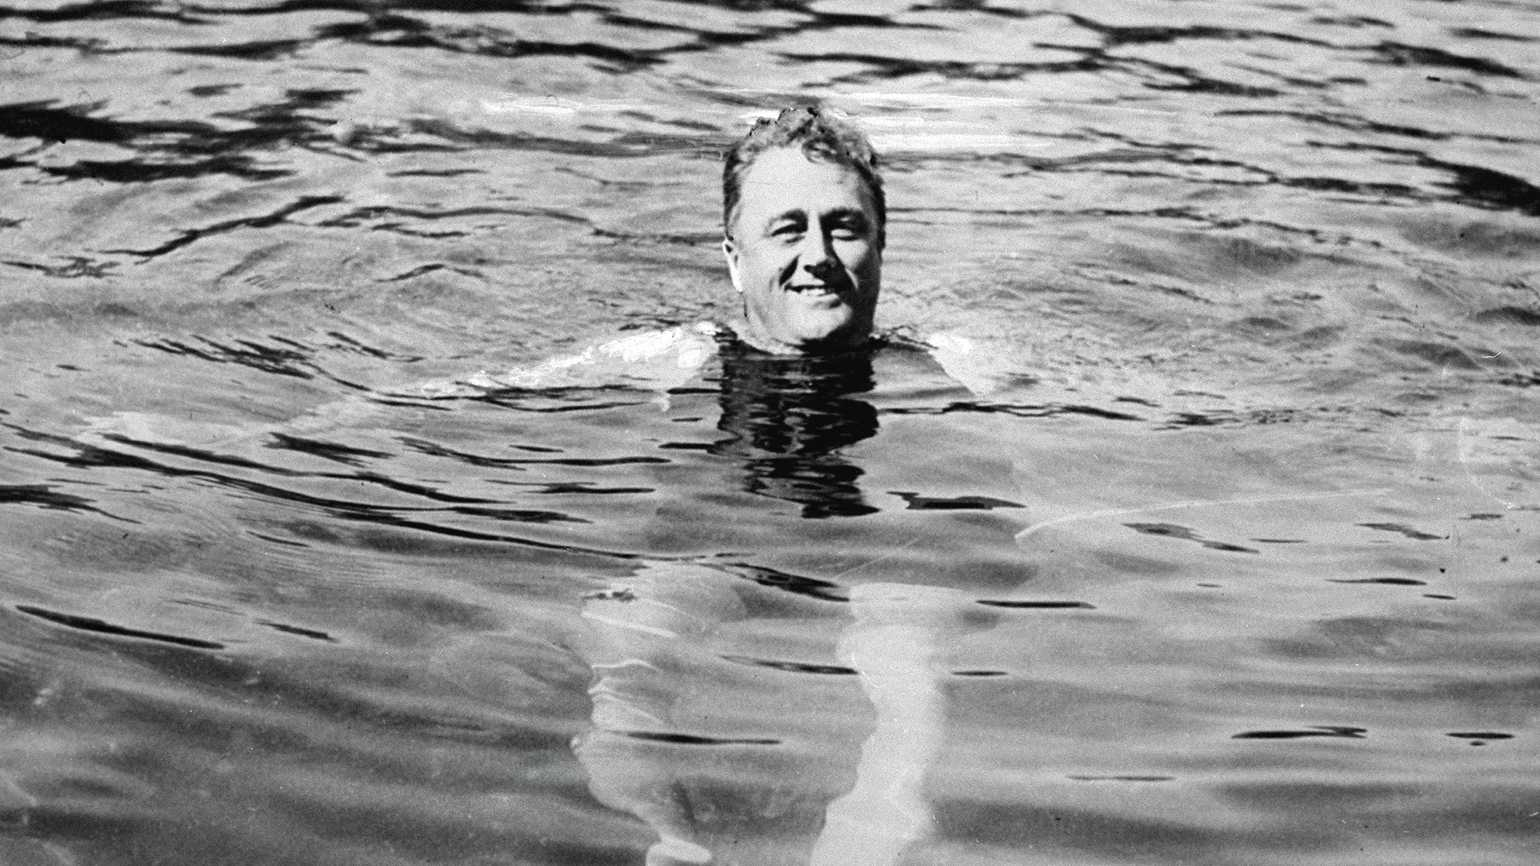 President Franklin D. Roosevelt in the healing waters of Warm Springs, Georgia.